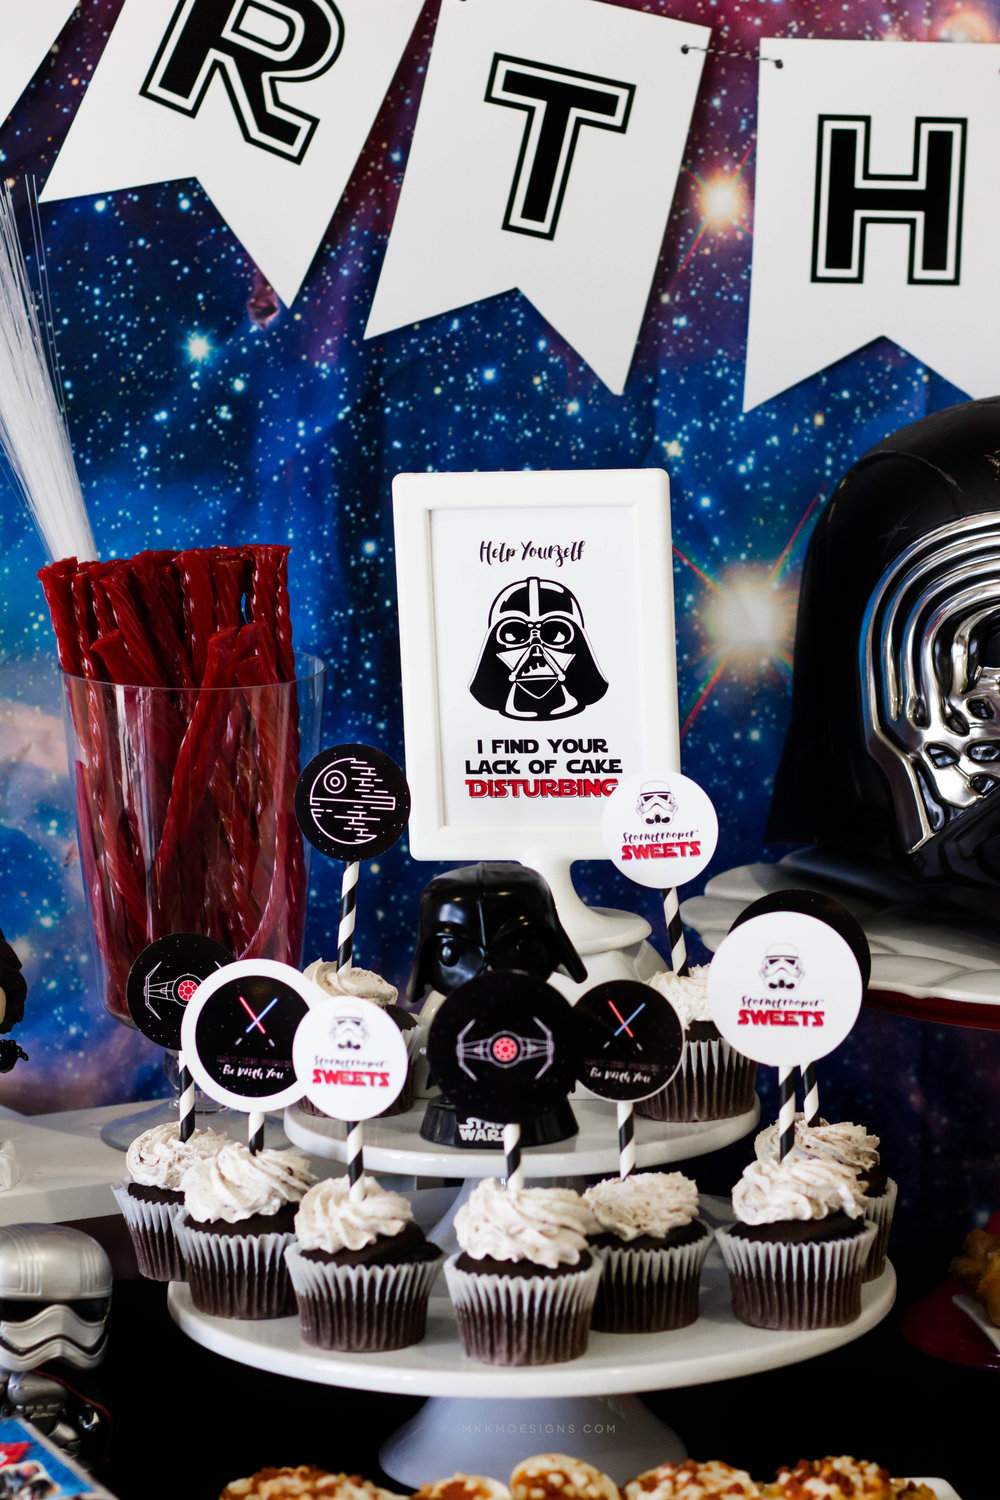 Star Wars Party Printables by MKKM Designs. Hop over to the blog and grab some free printables for your little one's party!